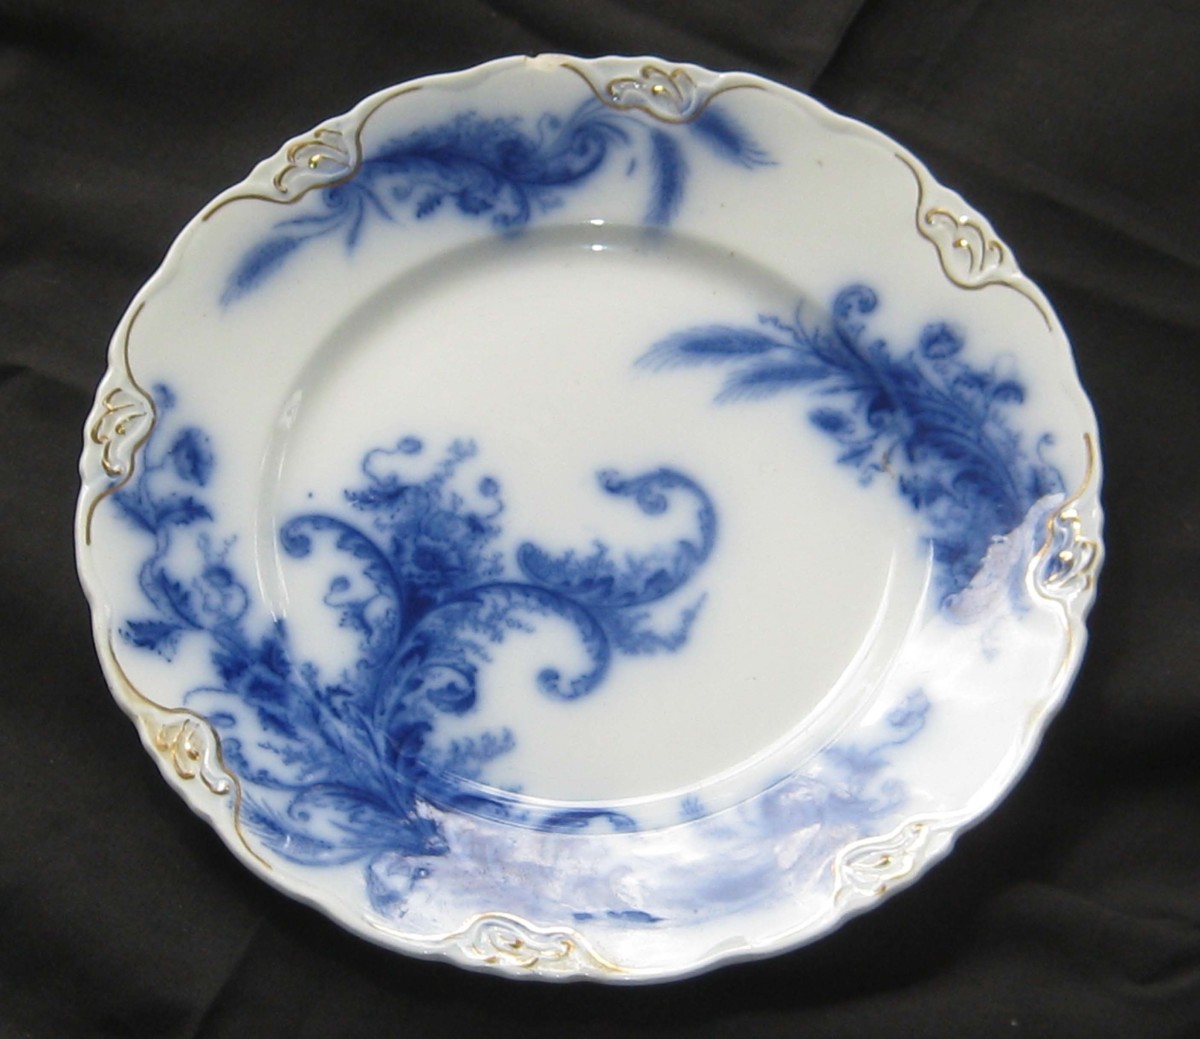 Flow Blue Wentworth by Meakin England 1880 : antique blue plates - pezcame.com